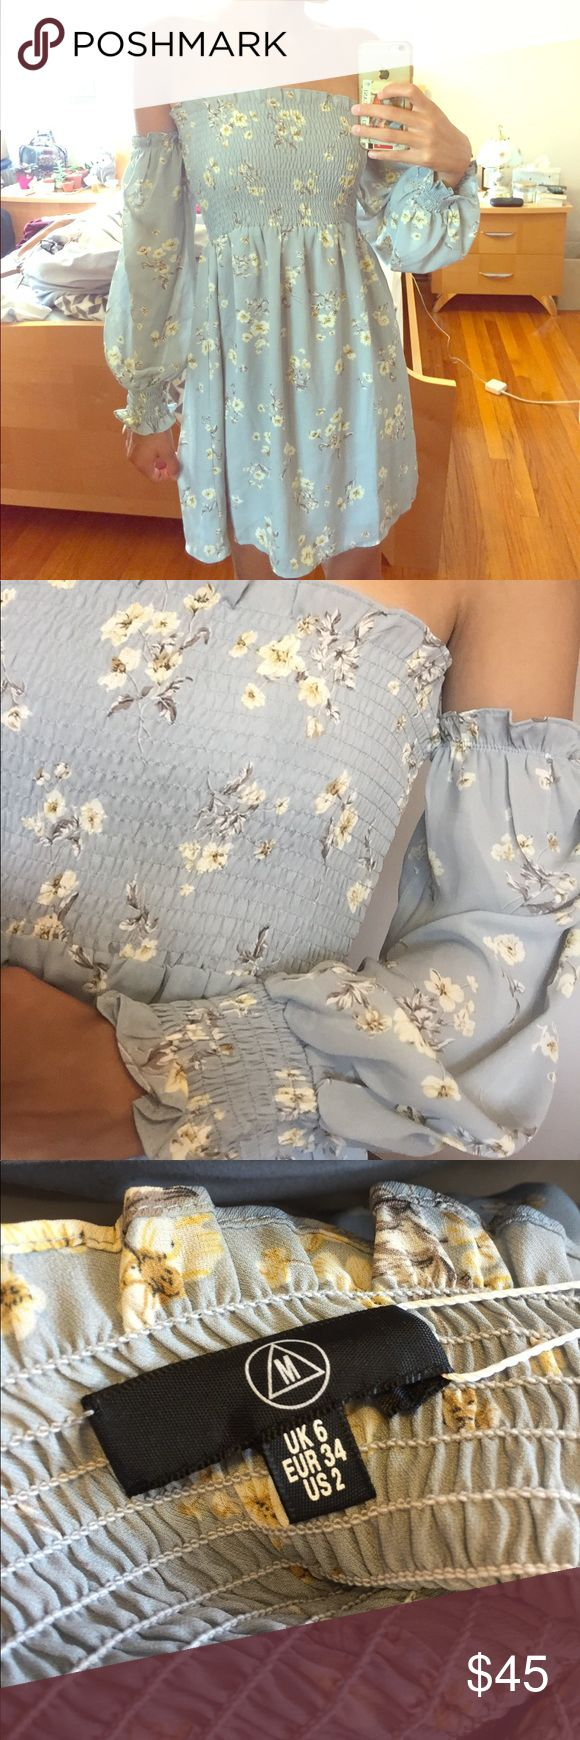 Misguided blue off the shoulder floral dress Never before worn long sleeve dress from misguided. US size 2. Blue with a beautiful floral print and ruched bodice. Missguided Dresses Mini